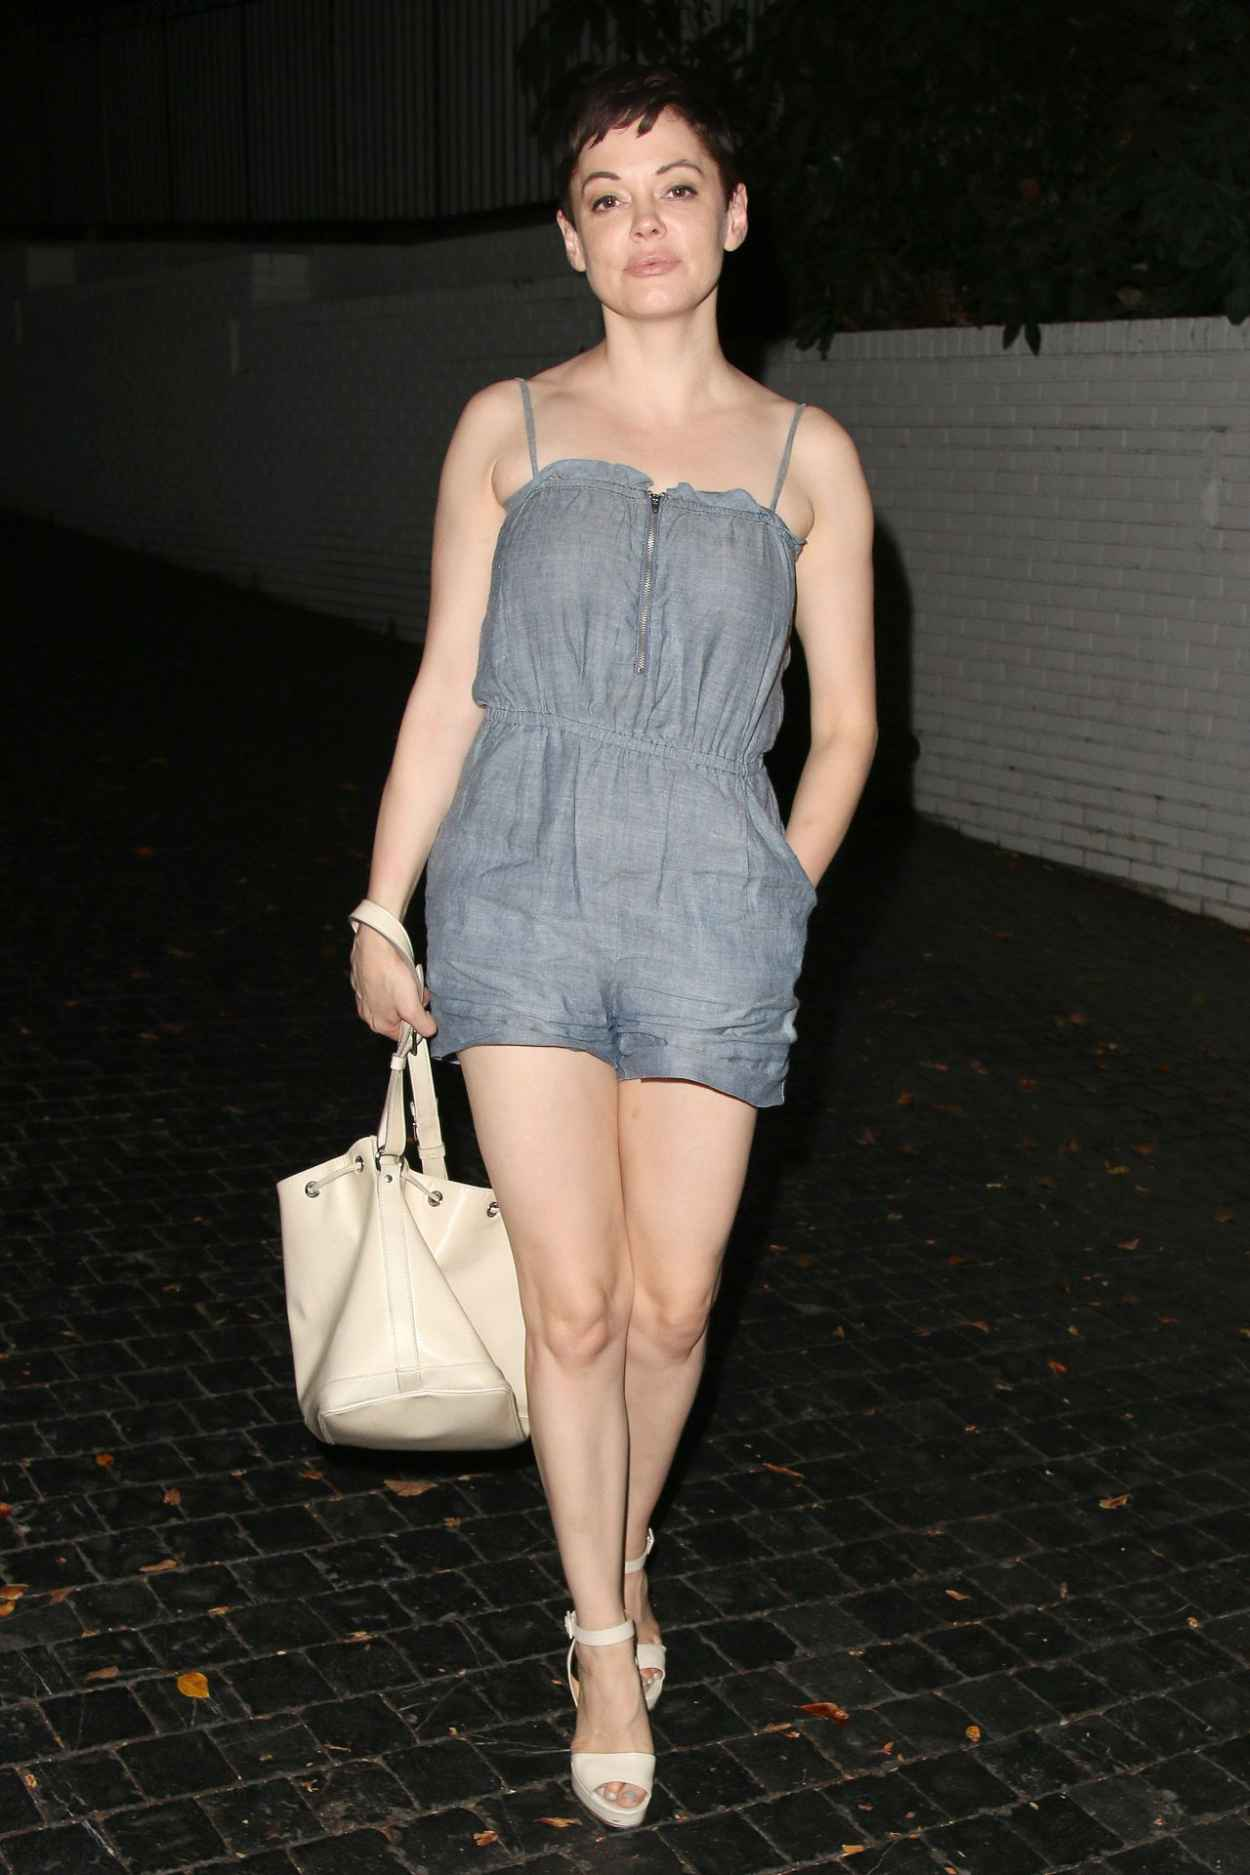 rose mcgowan naked images